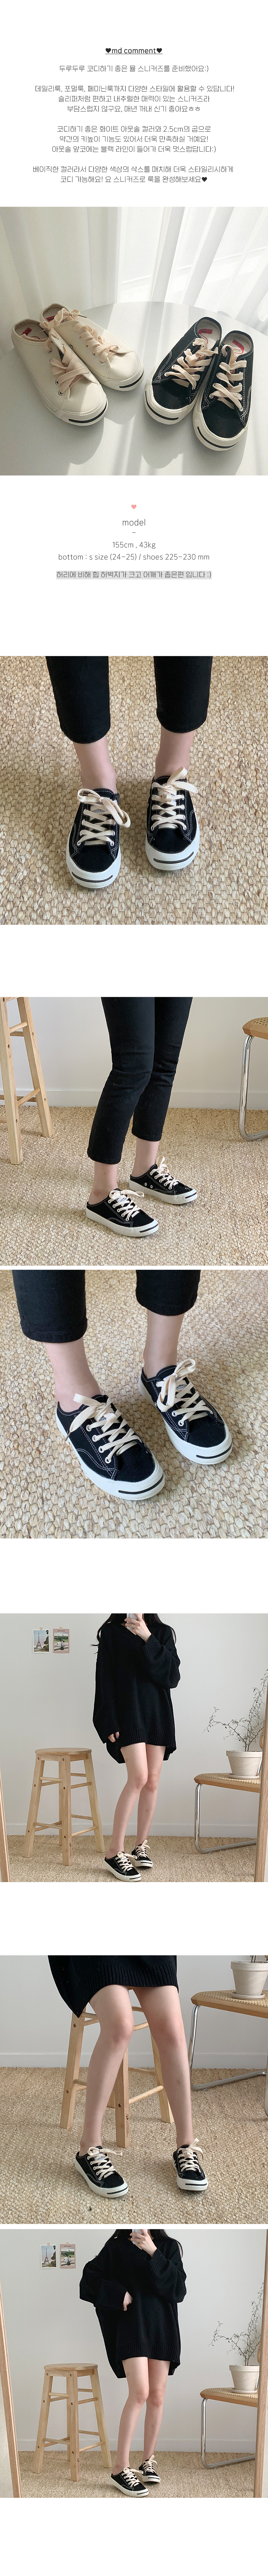 Cotton mules sneakers